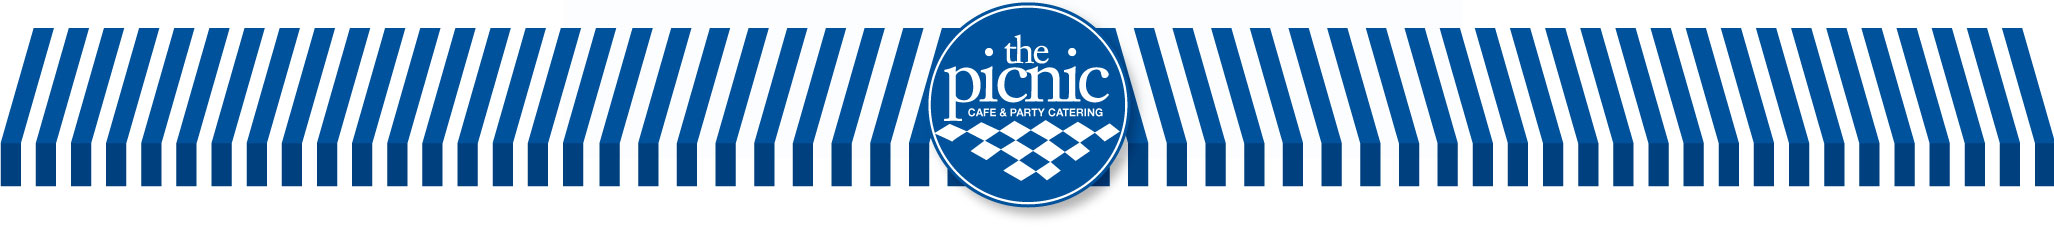 The Picnic Cafe banner